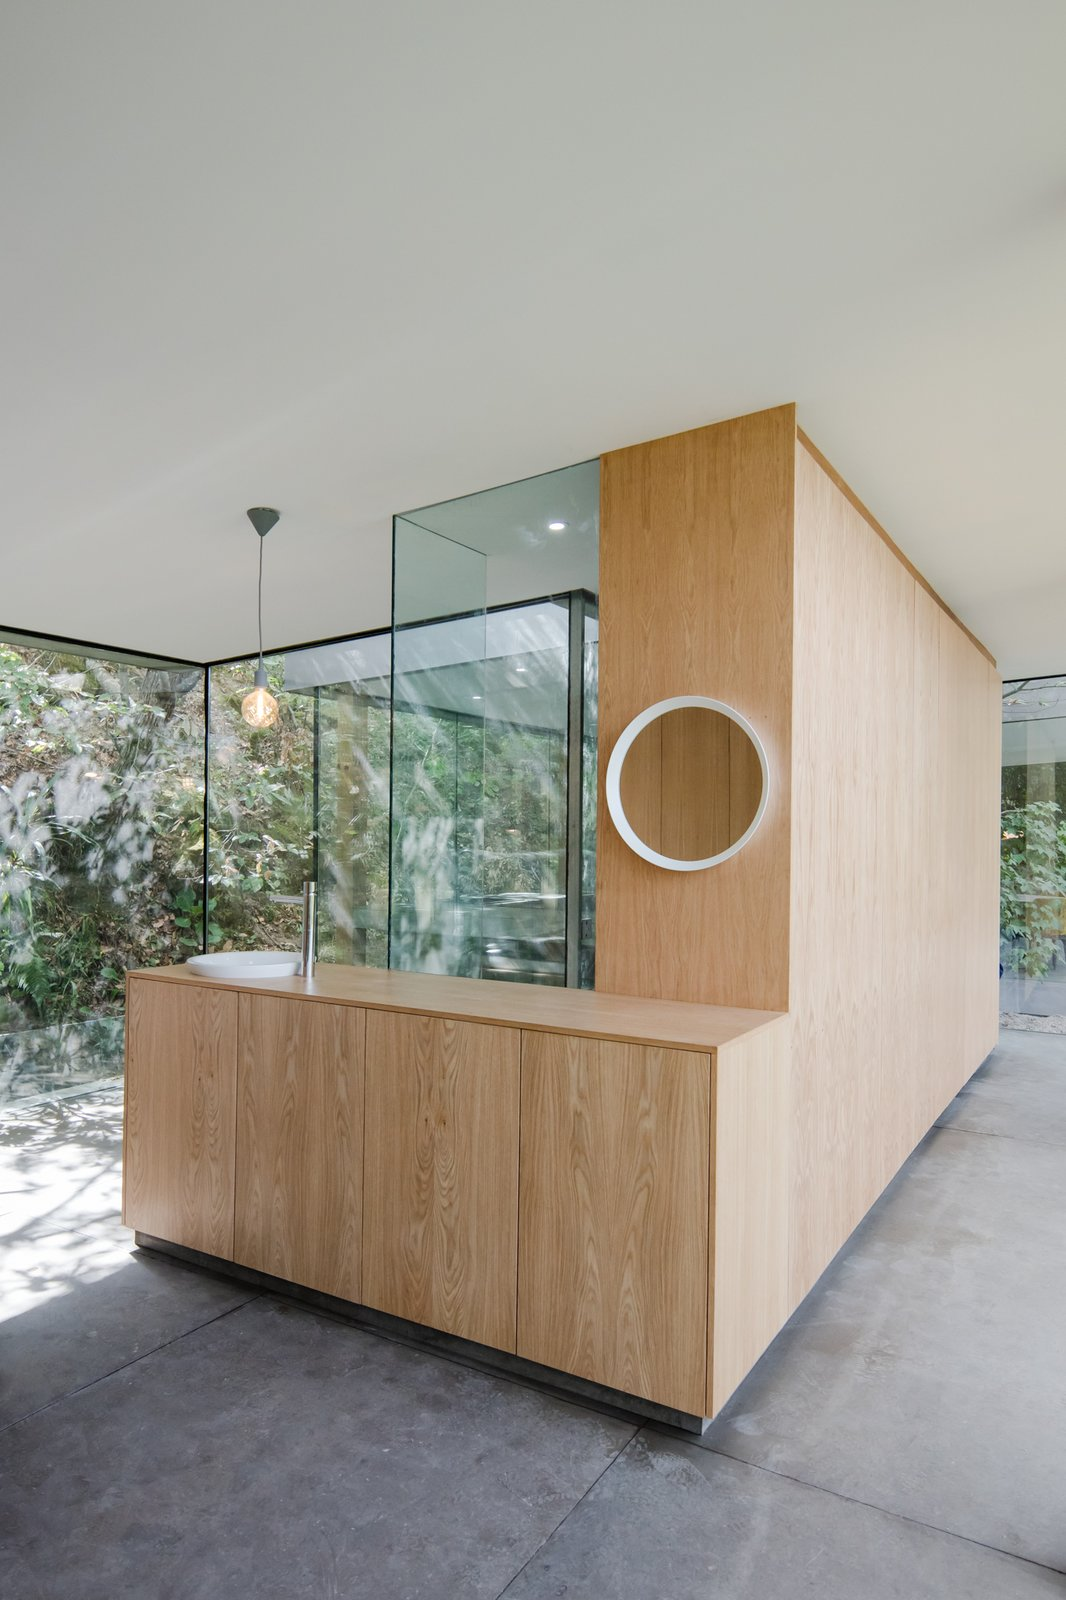 Living, Concrete, Pendant, and Bar Bookmatched wood veneer cabinetry brings a warm, tactile feel to the interiors.  Best Living Concrete Bar Photos from A Portuguese Glass House Uses Surrounding Foliage as a Privacy Screen